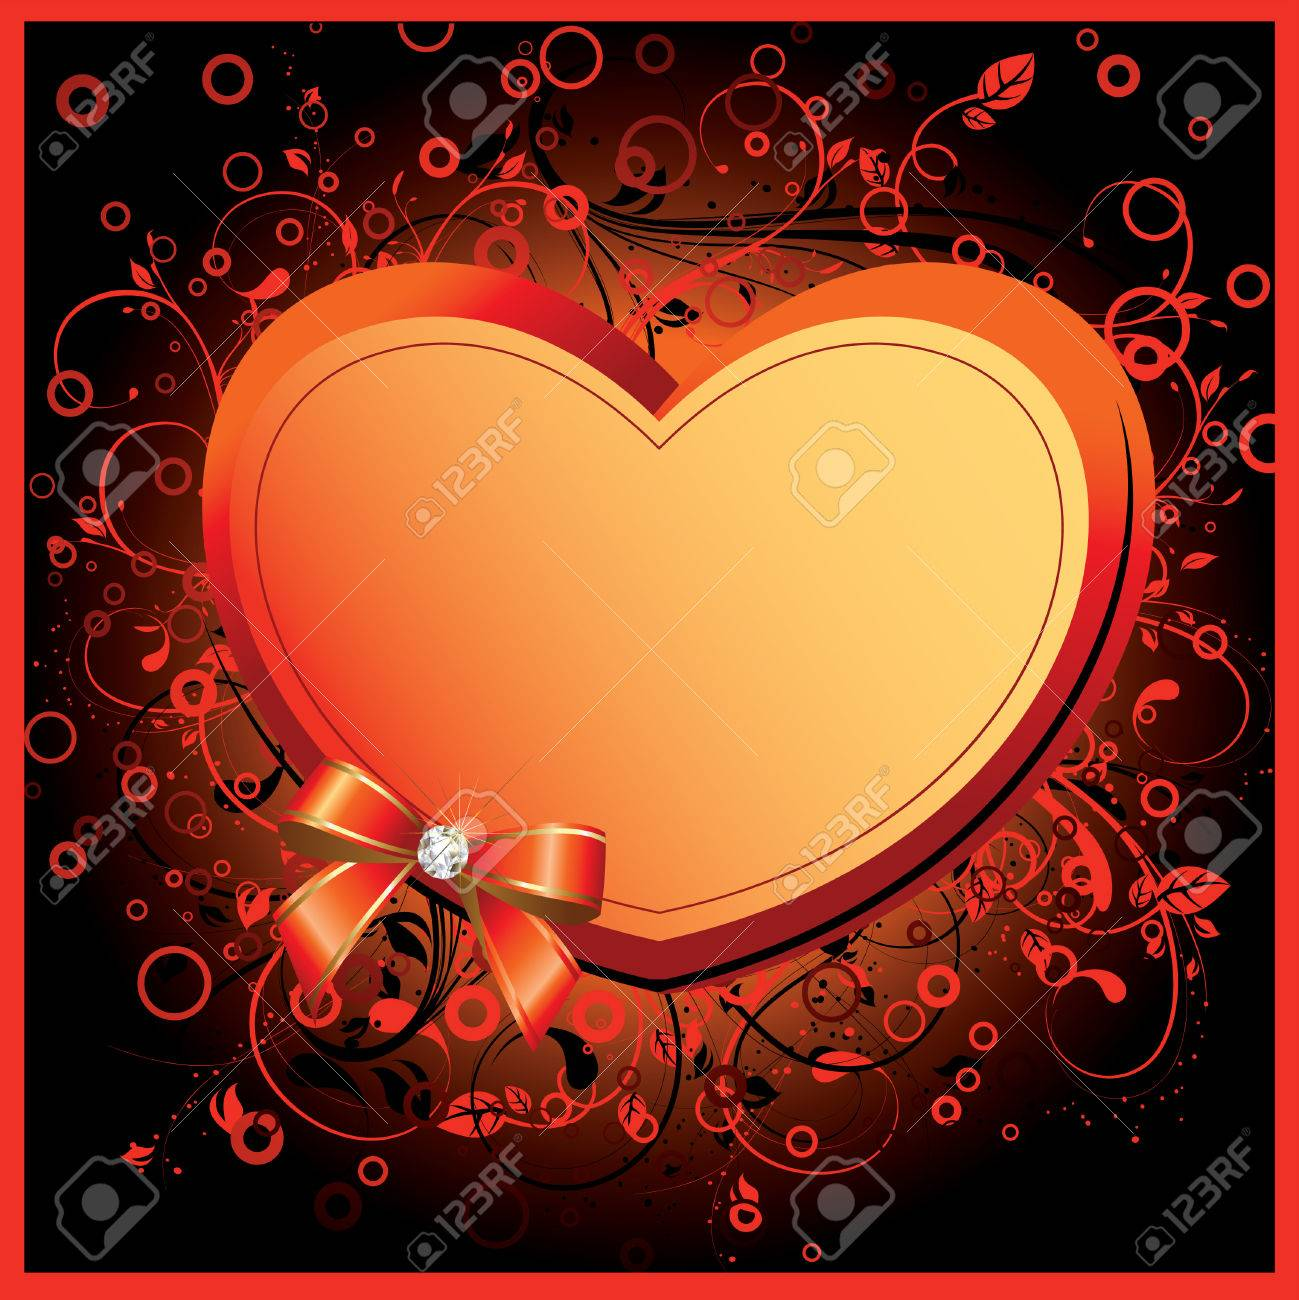 Heart on floral background. Valentine card. Place for your text. art-illustration. Stock Vector - 6532621